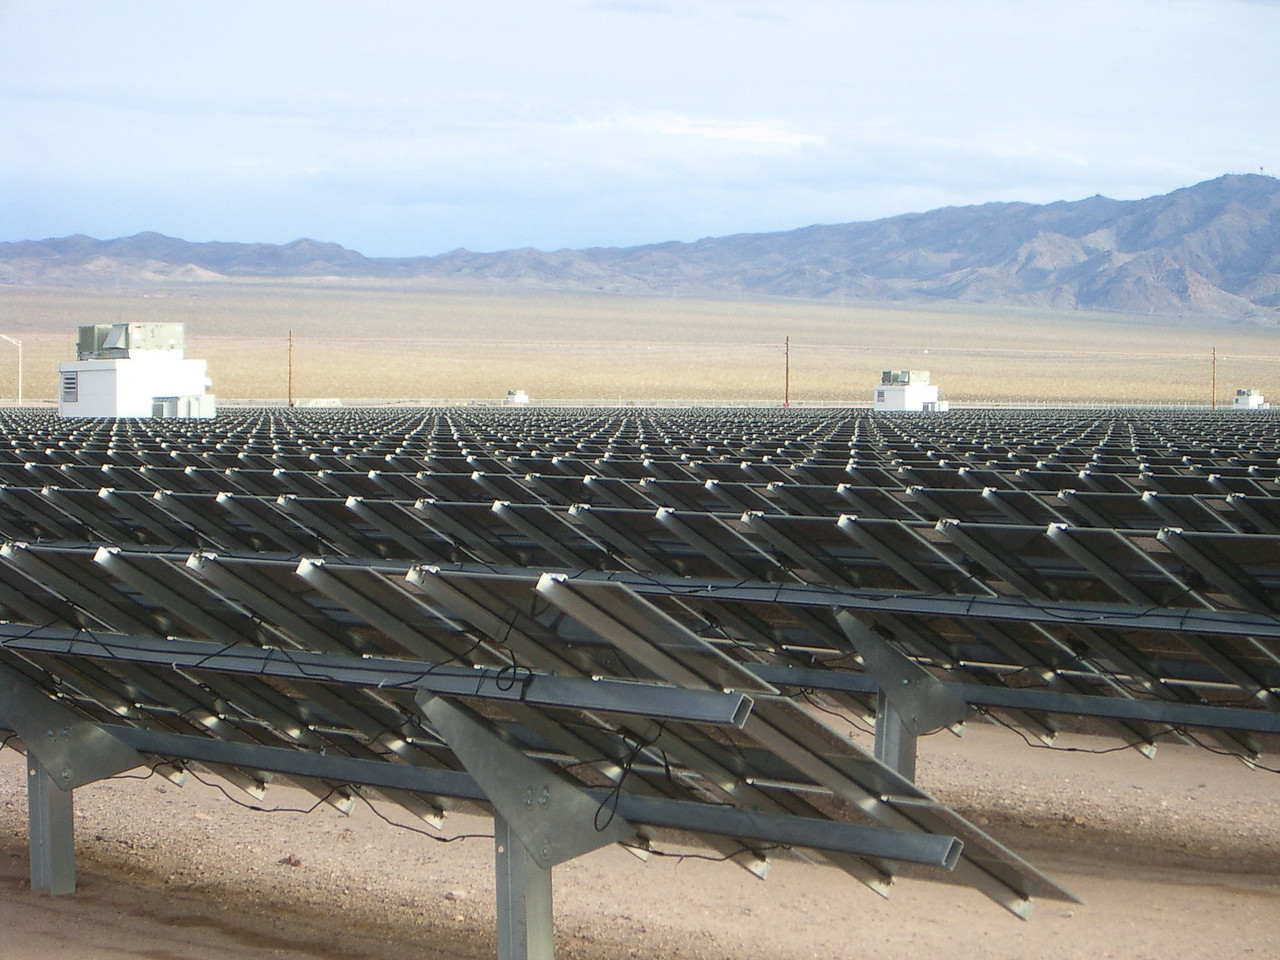 At 10 MW, it isn't as big as North America's largest photovoltaic array, at Nellis Air Force Base, with 14 megawatts.